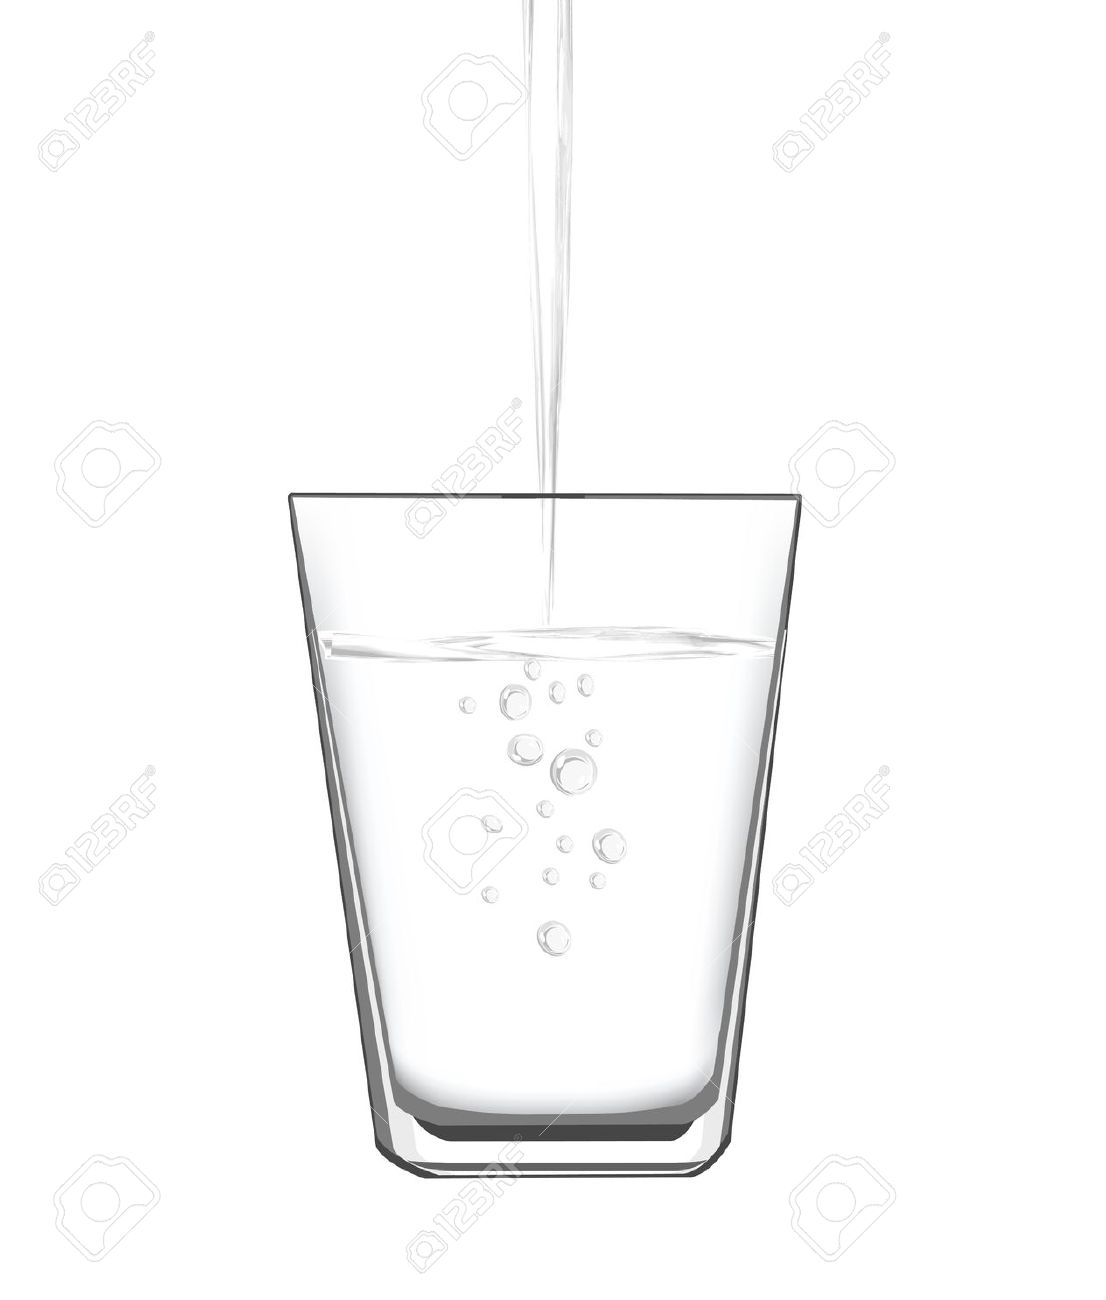 Water drop fill up clipart black and white.